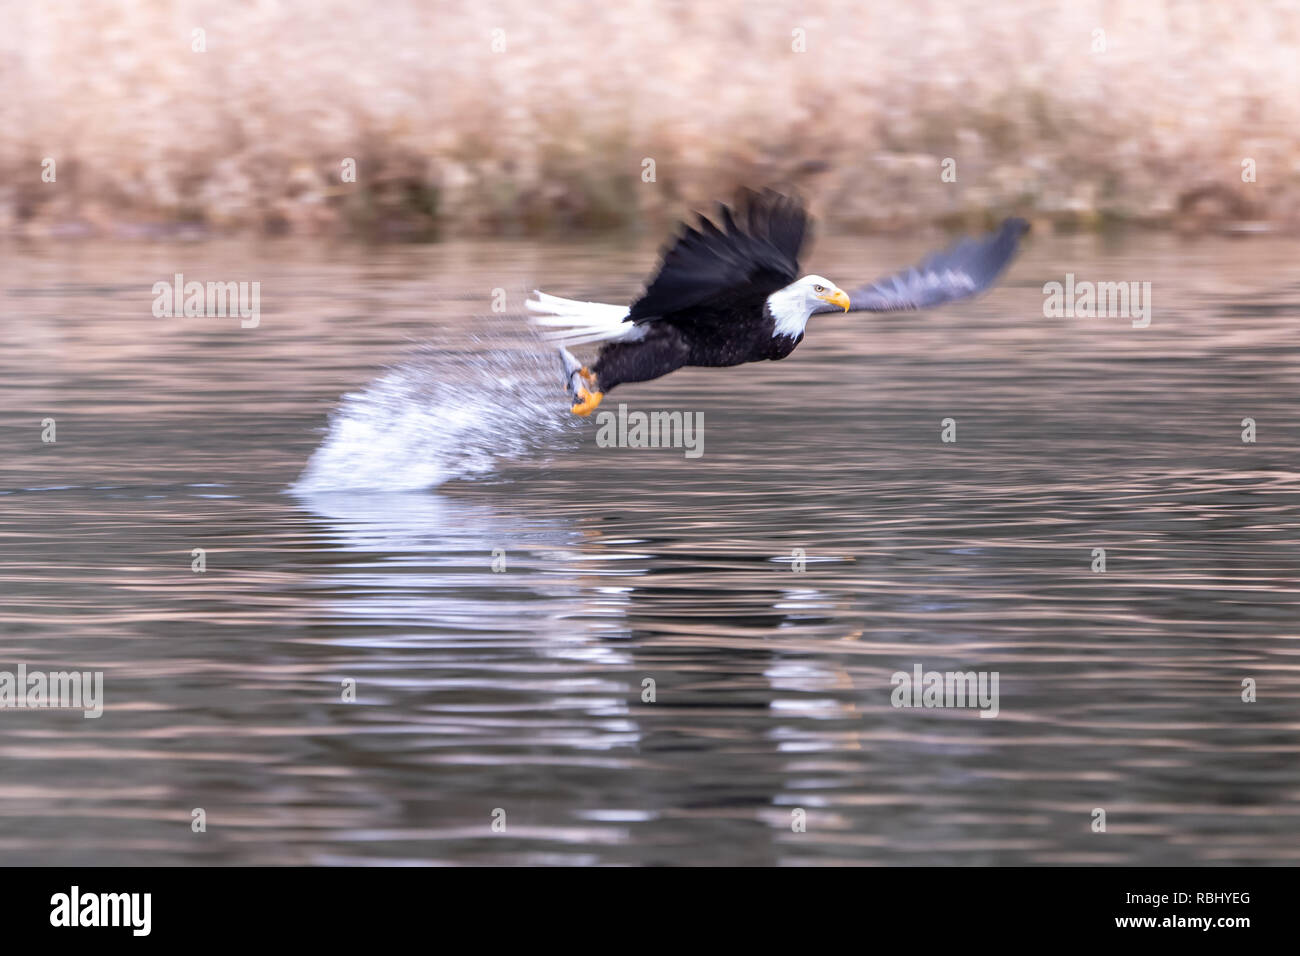 Bald eagle (Hailaeetus leucocephalus) takes off with fish firmly clasped in talons - Stock Image